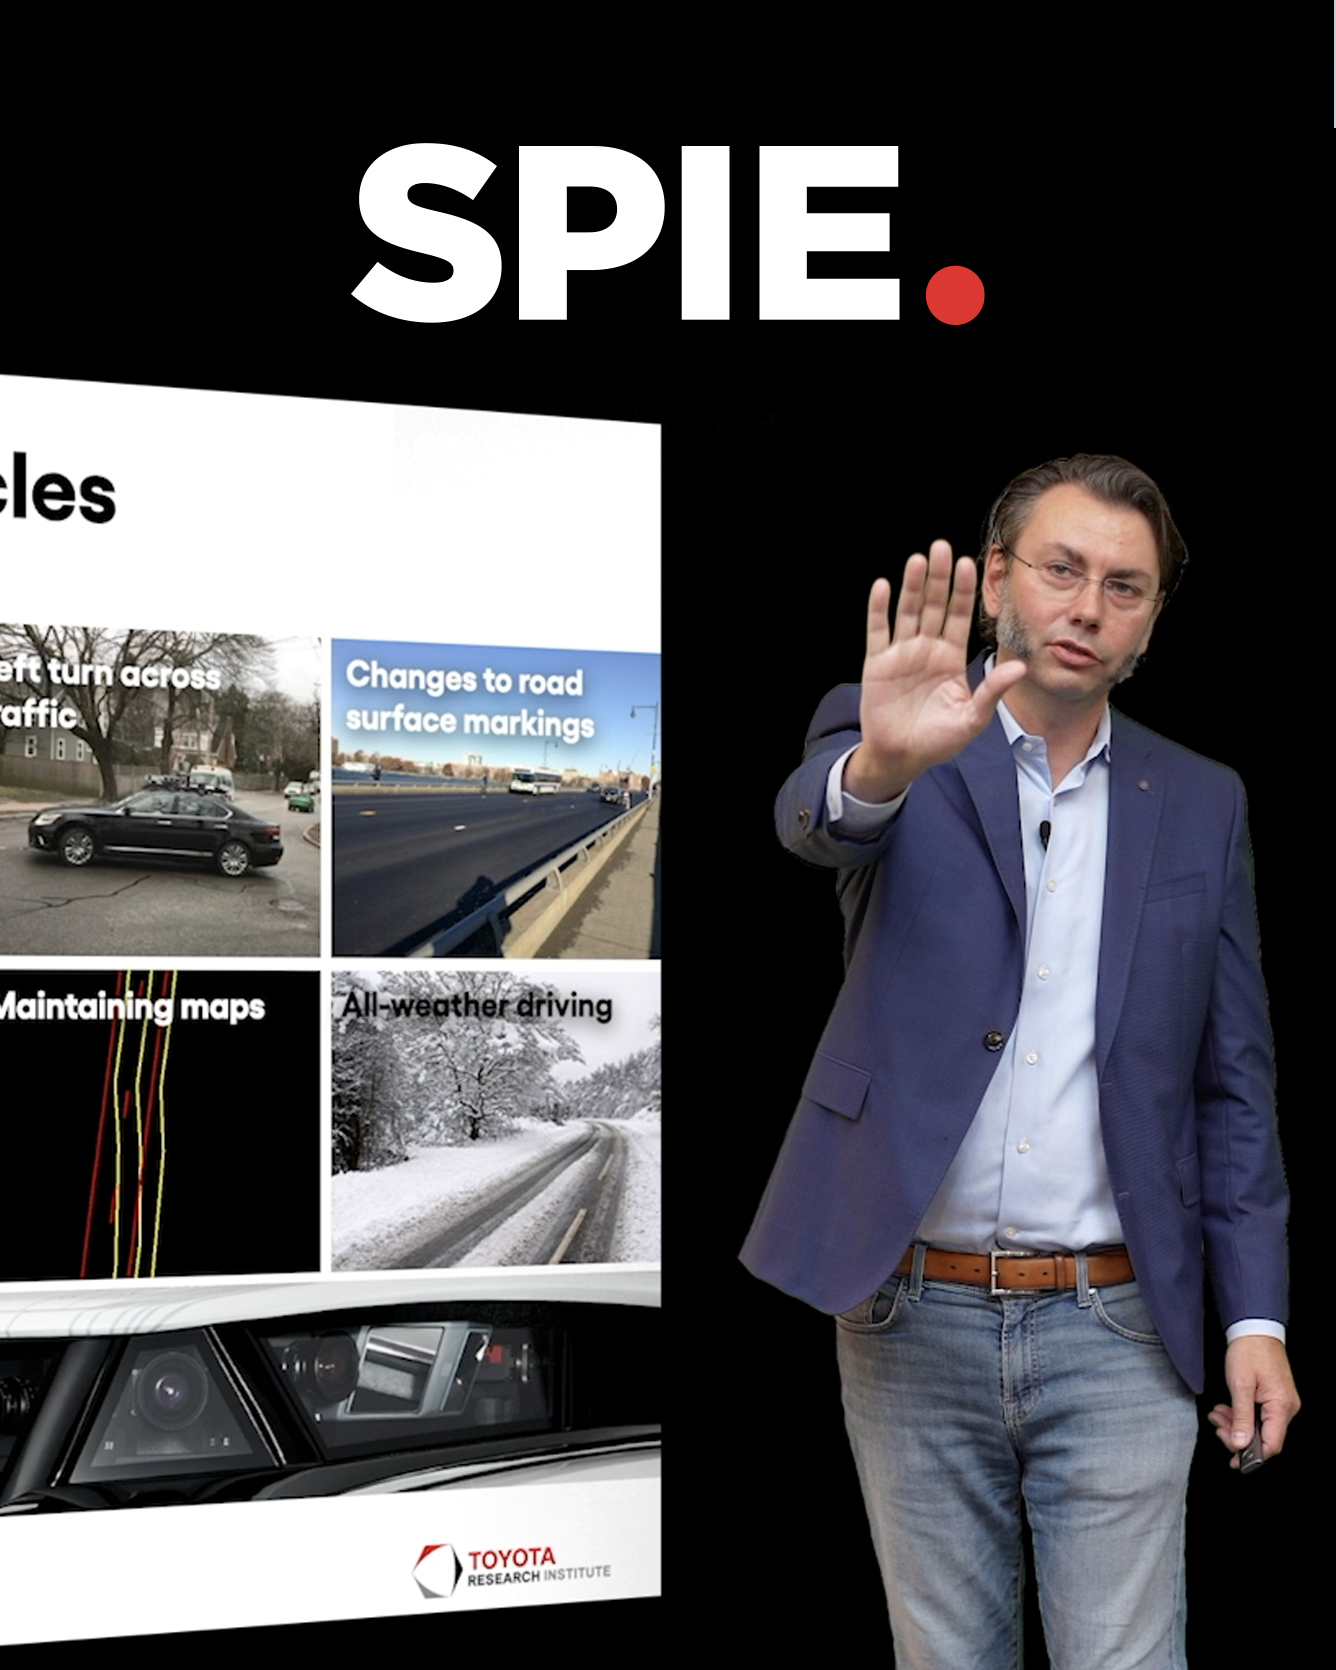 Ryan Eustice SPIE